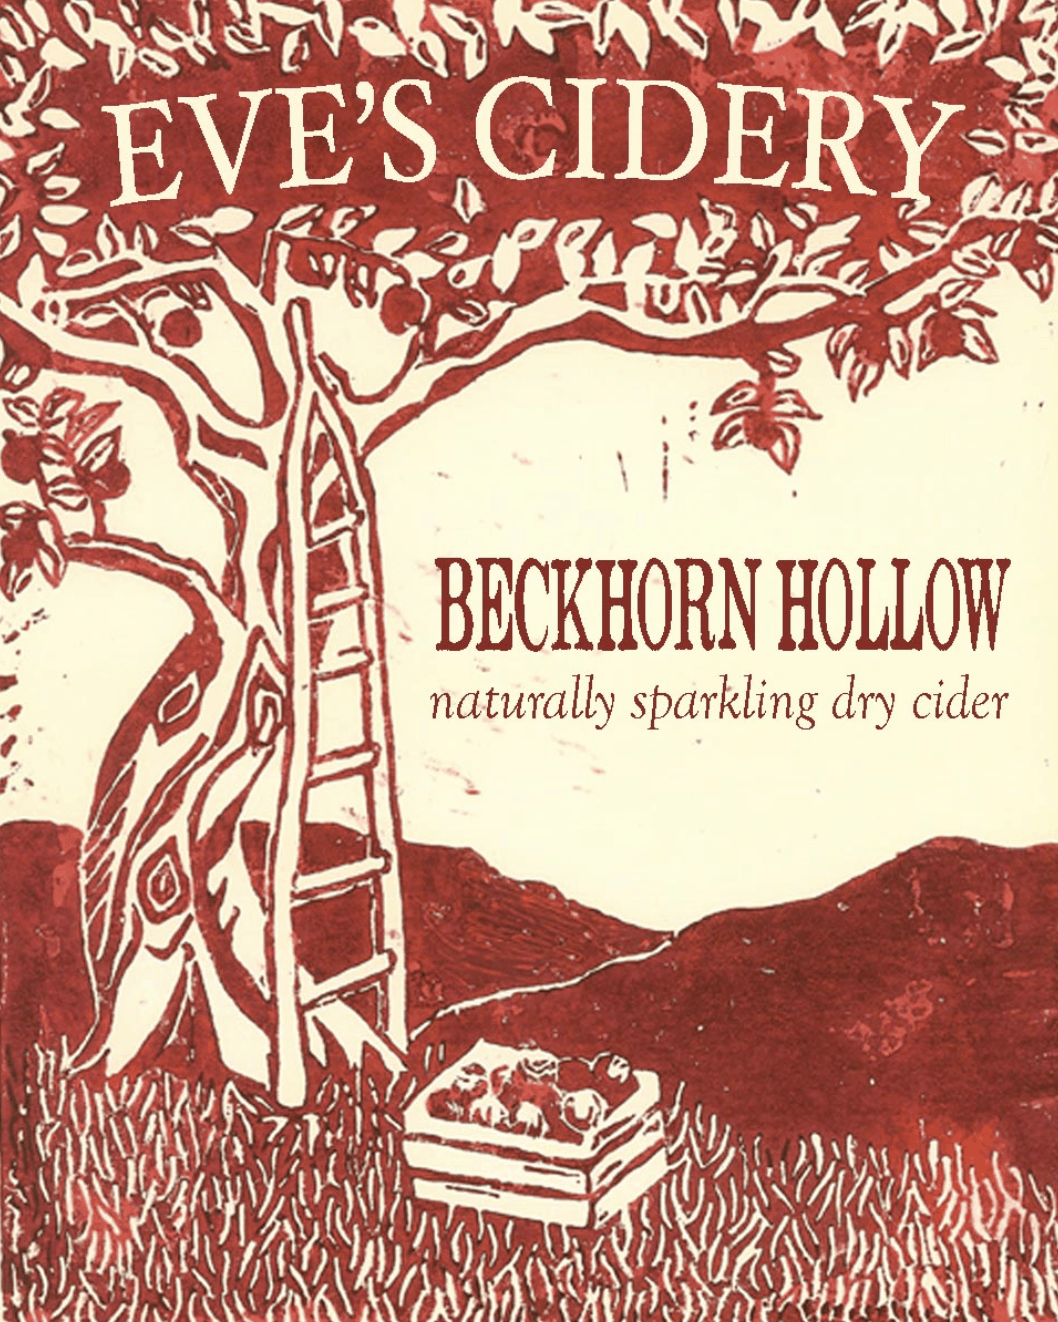 2014 Beckhorn Hollow